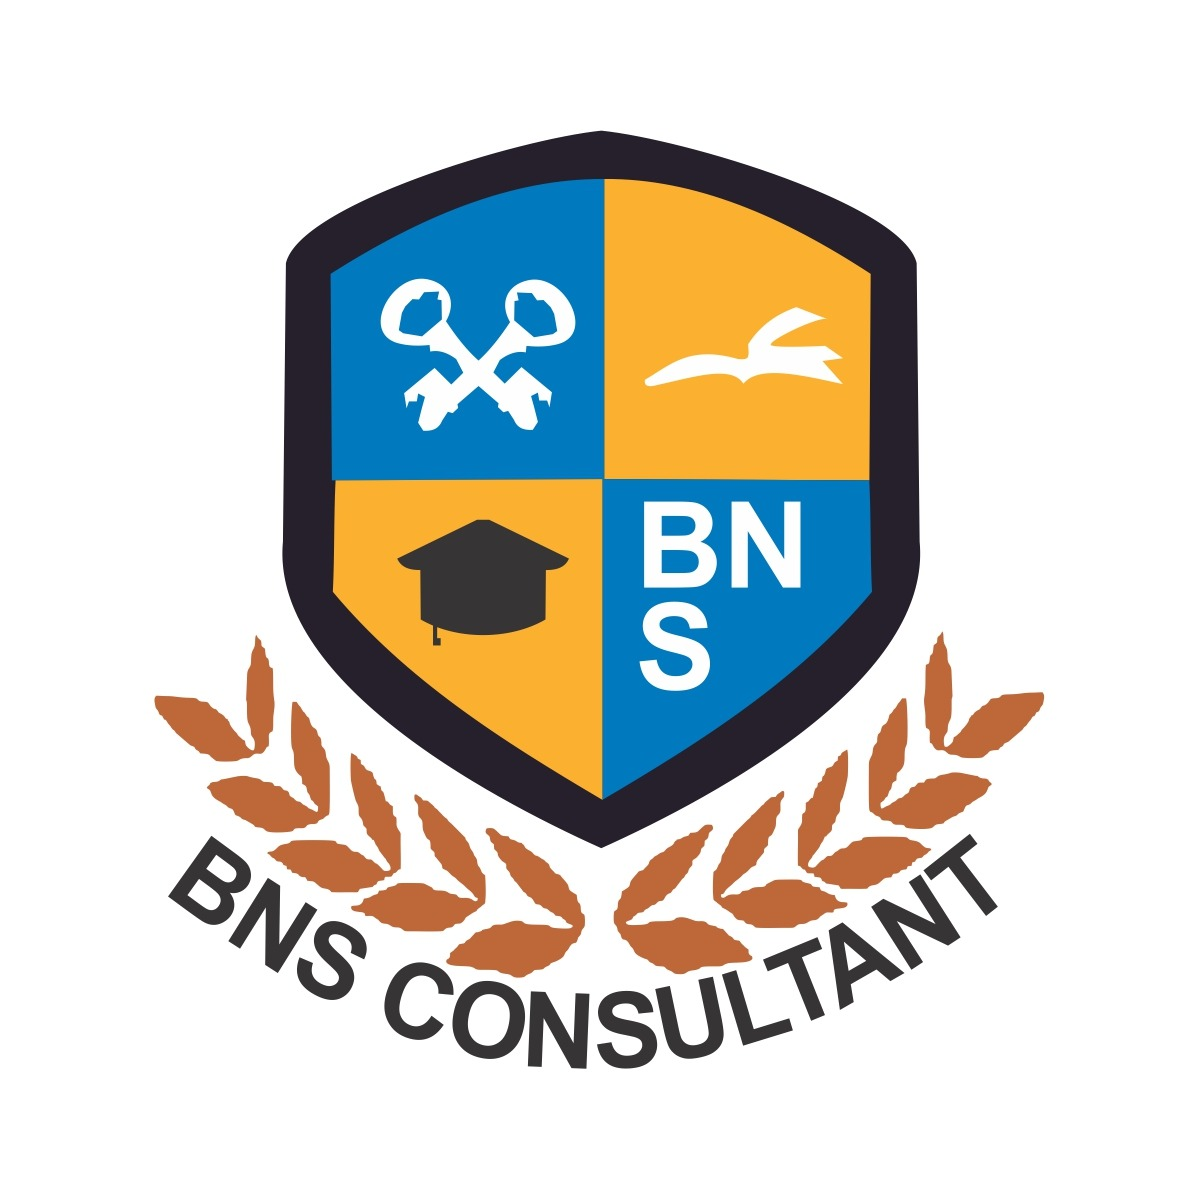 Manager - RecruitmentBNS LOGO.jpeg